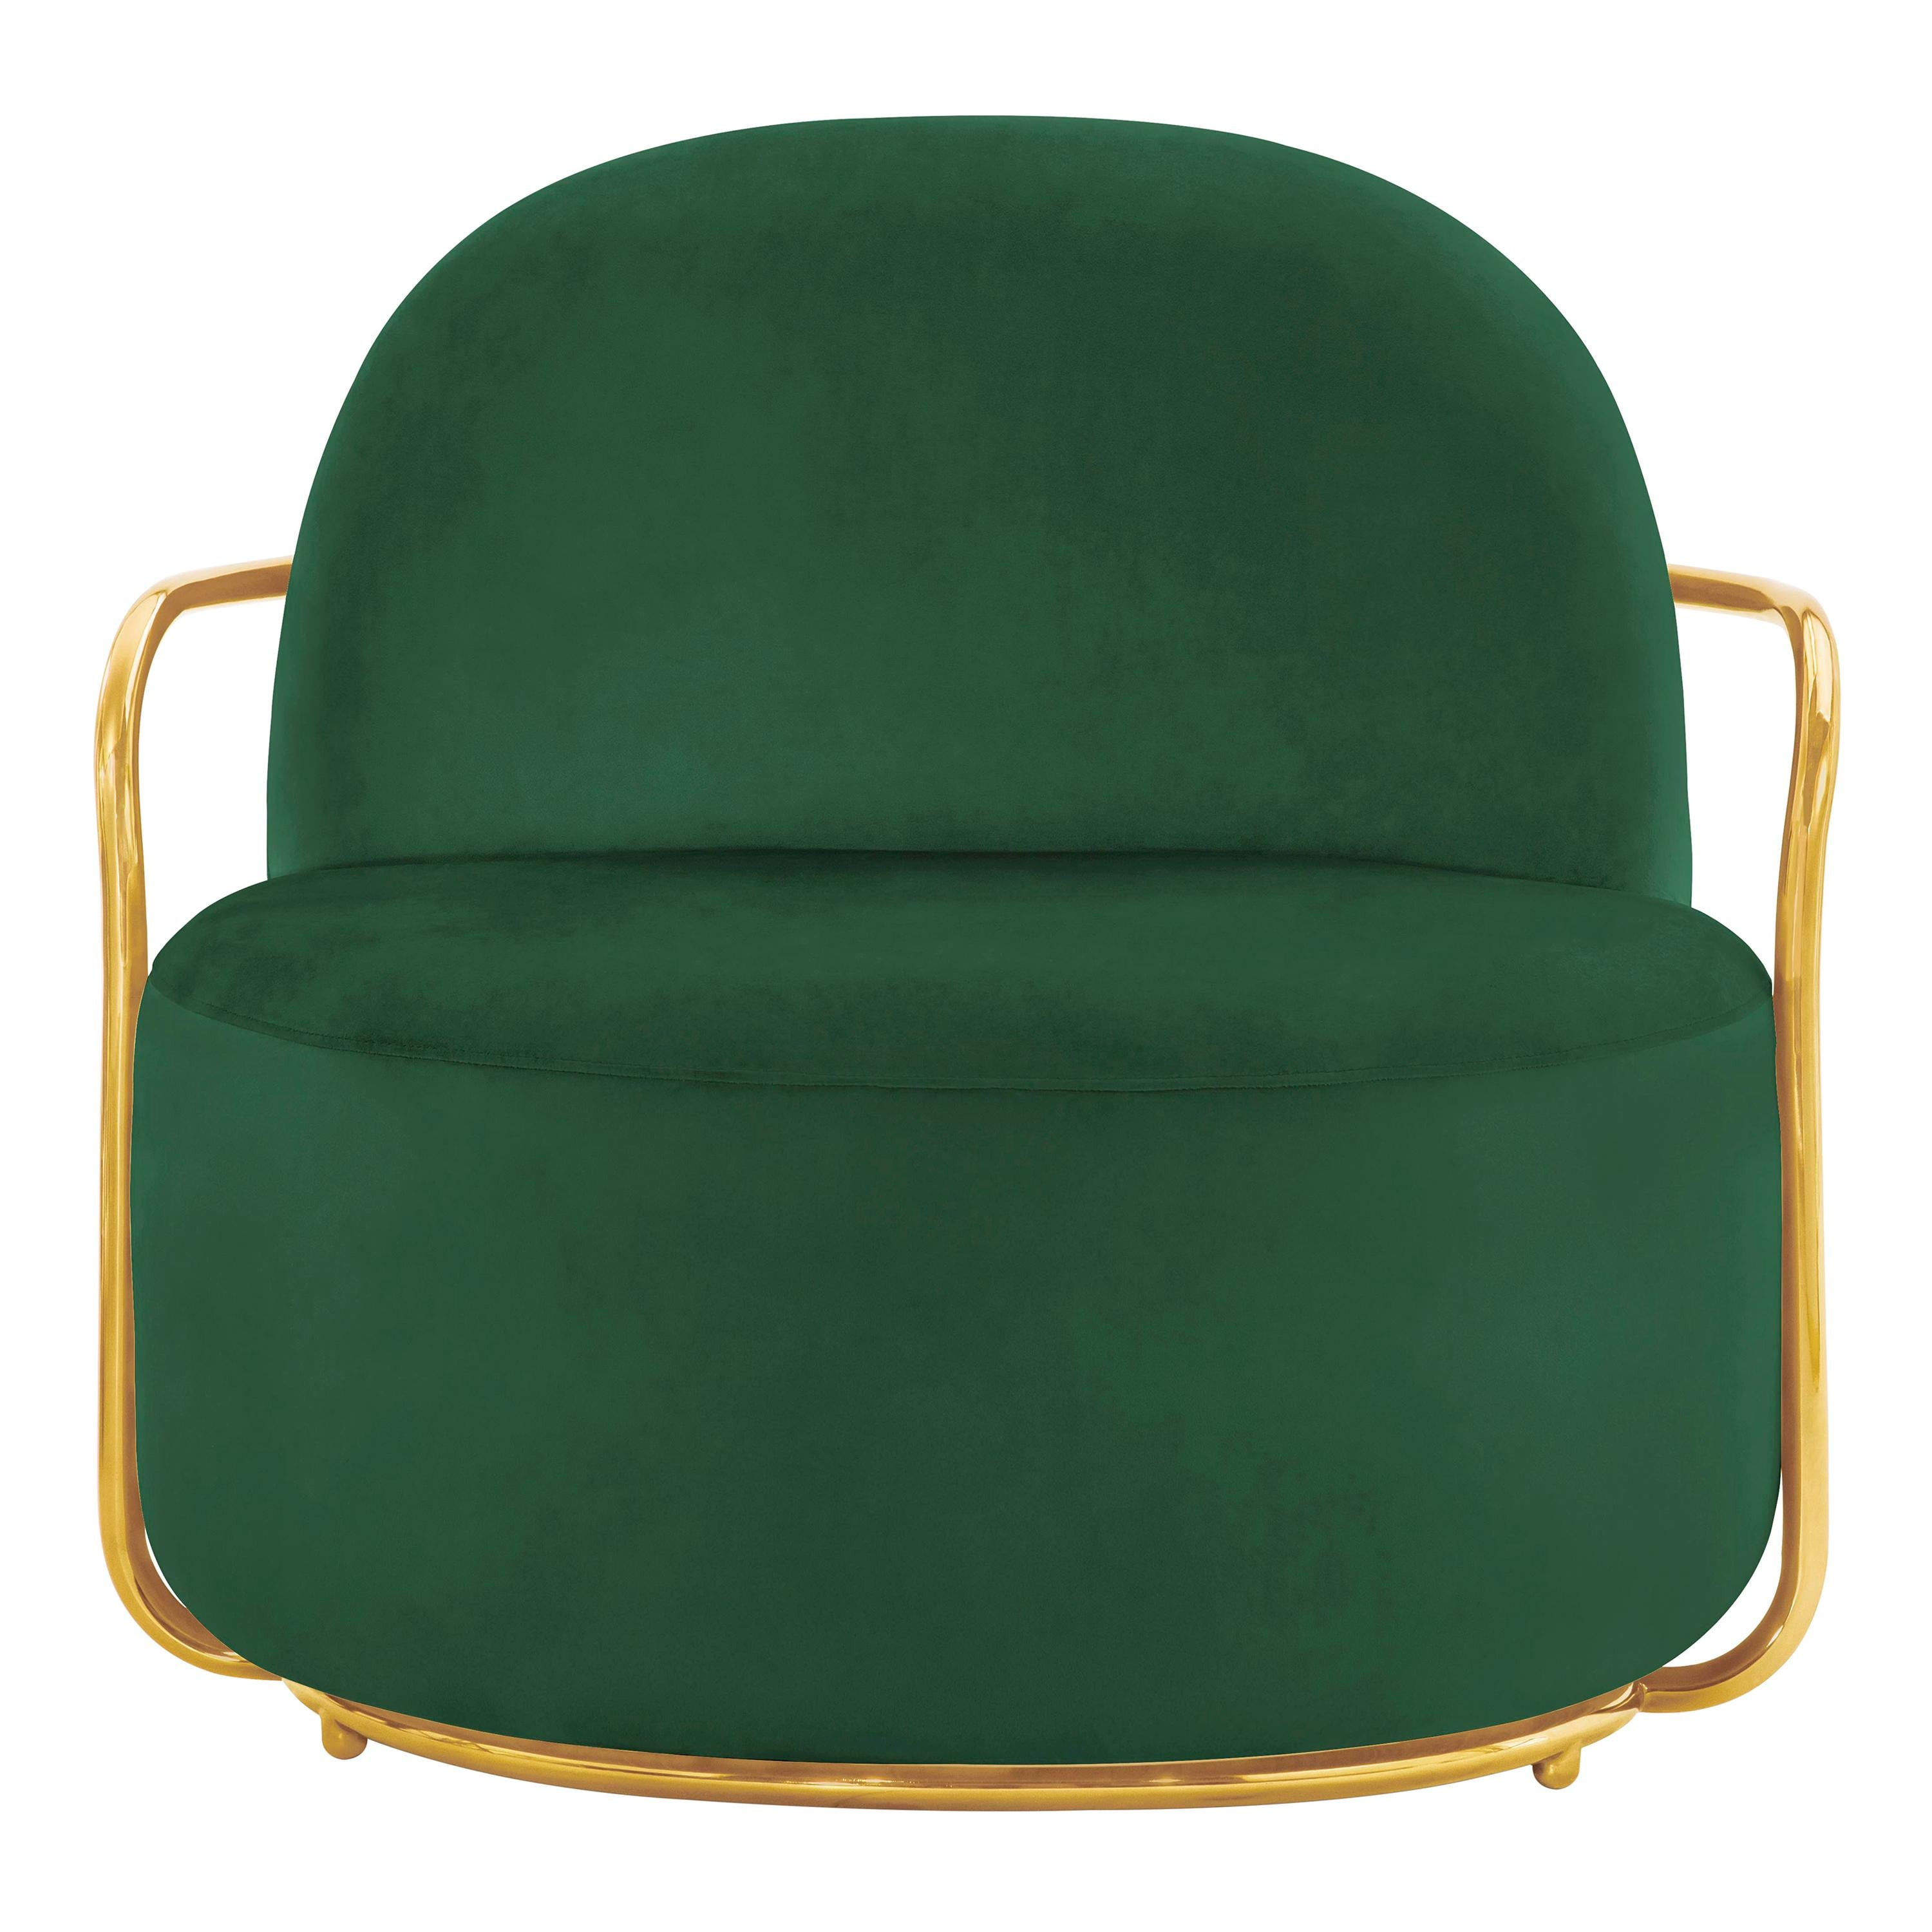 Orion Lounge Chair with Plush Green Velvet and Gold Arms by Nika Zupanc